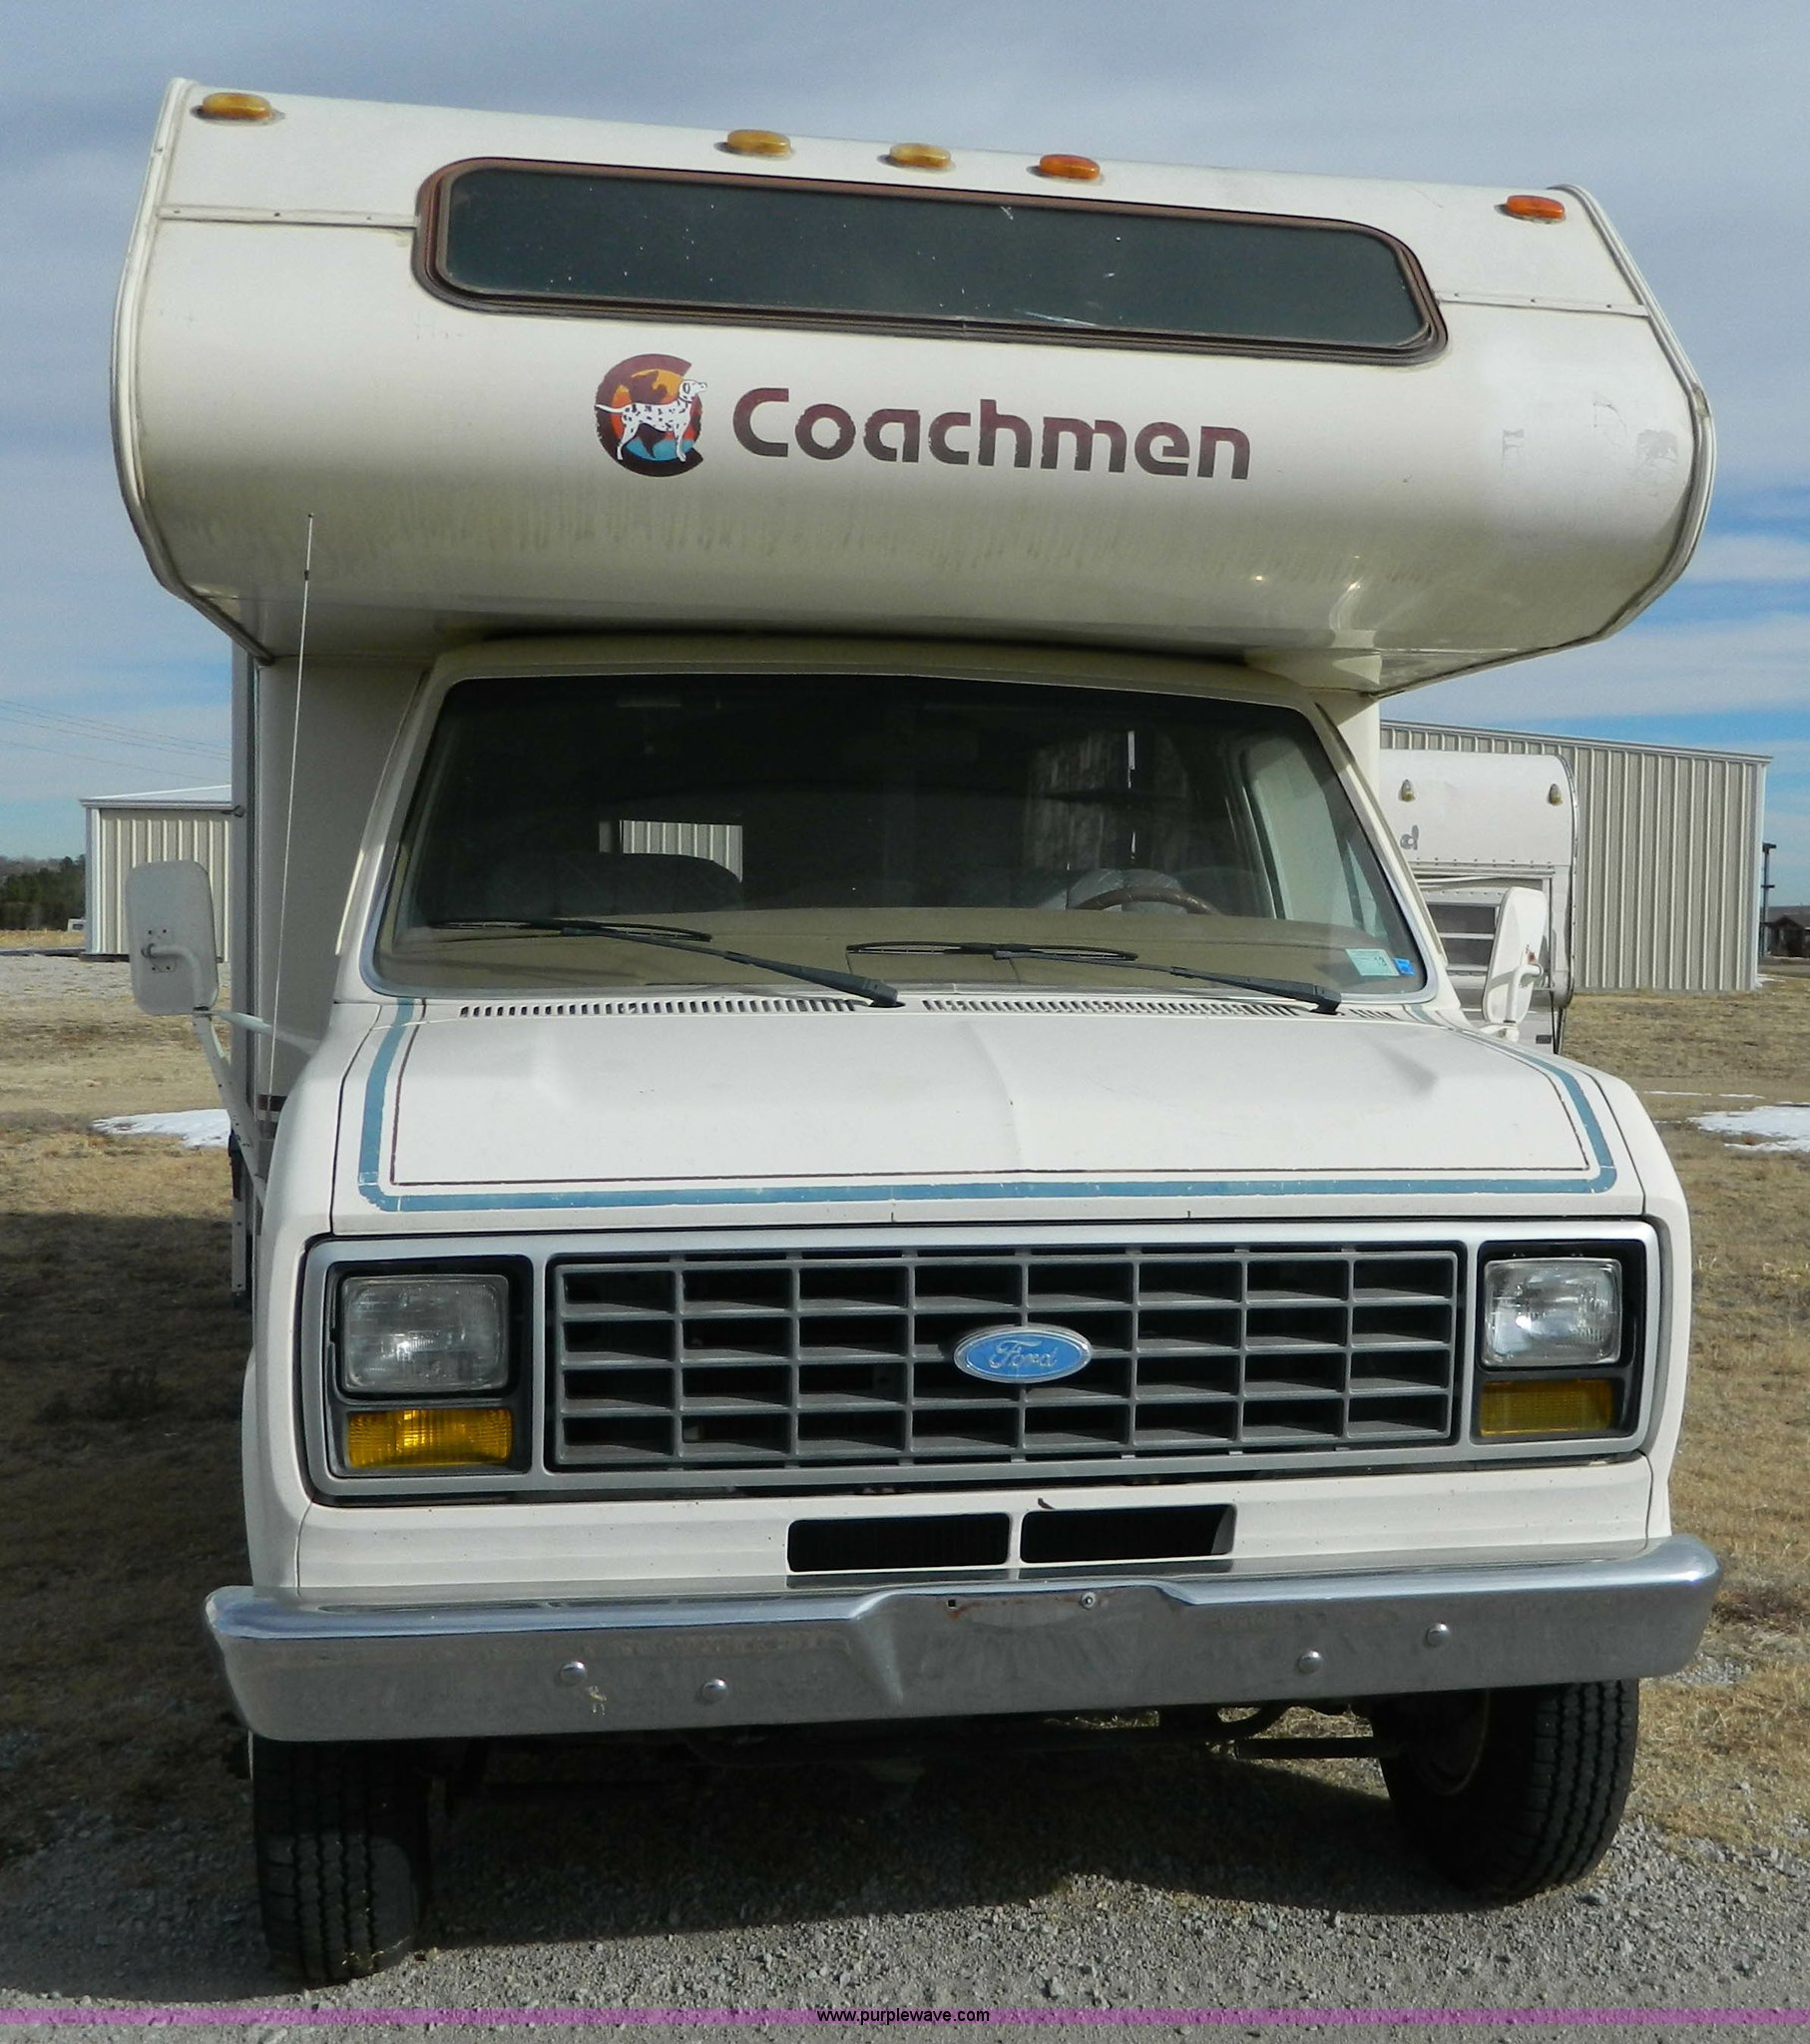 hight resolution of  wiring diagram on 1985 ford econoline e350 coachman 26 recreational vehicle